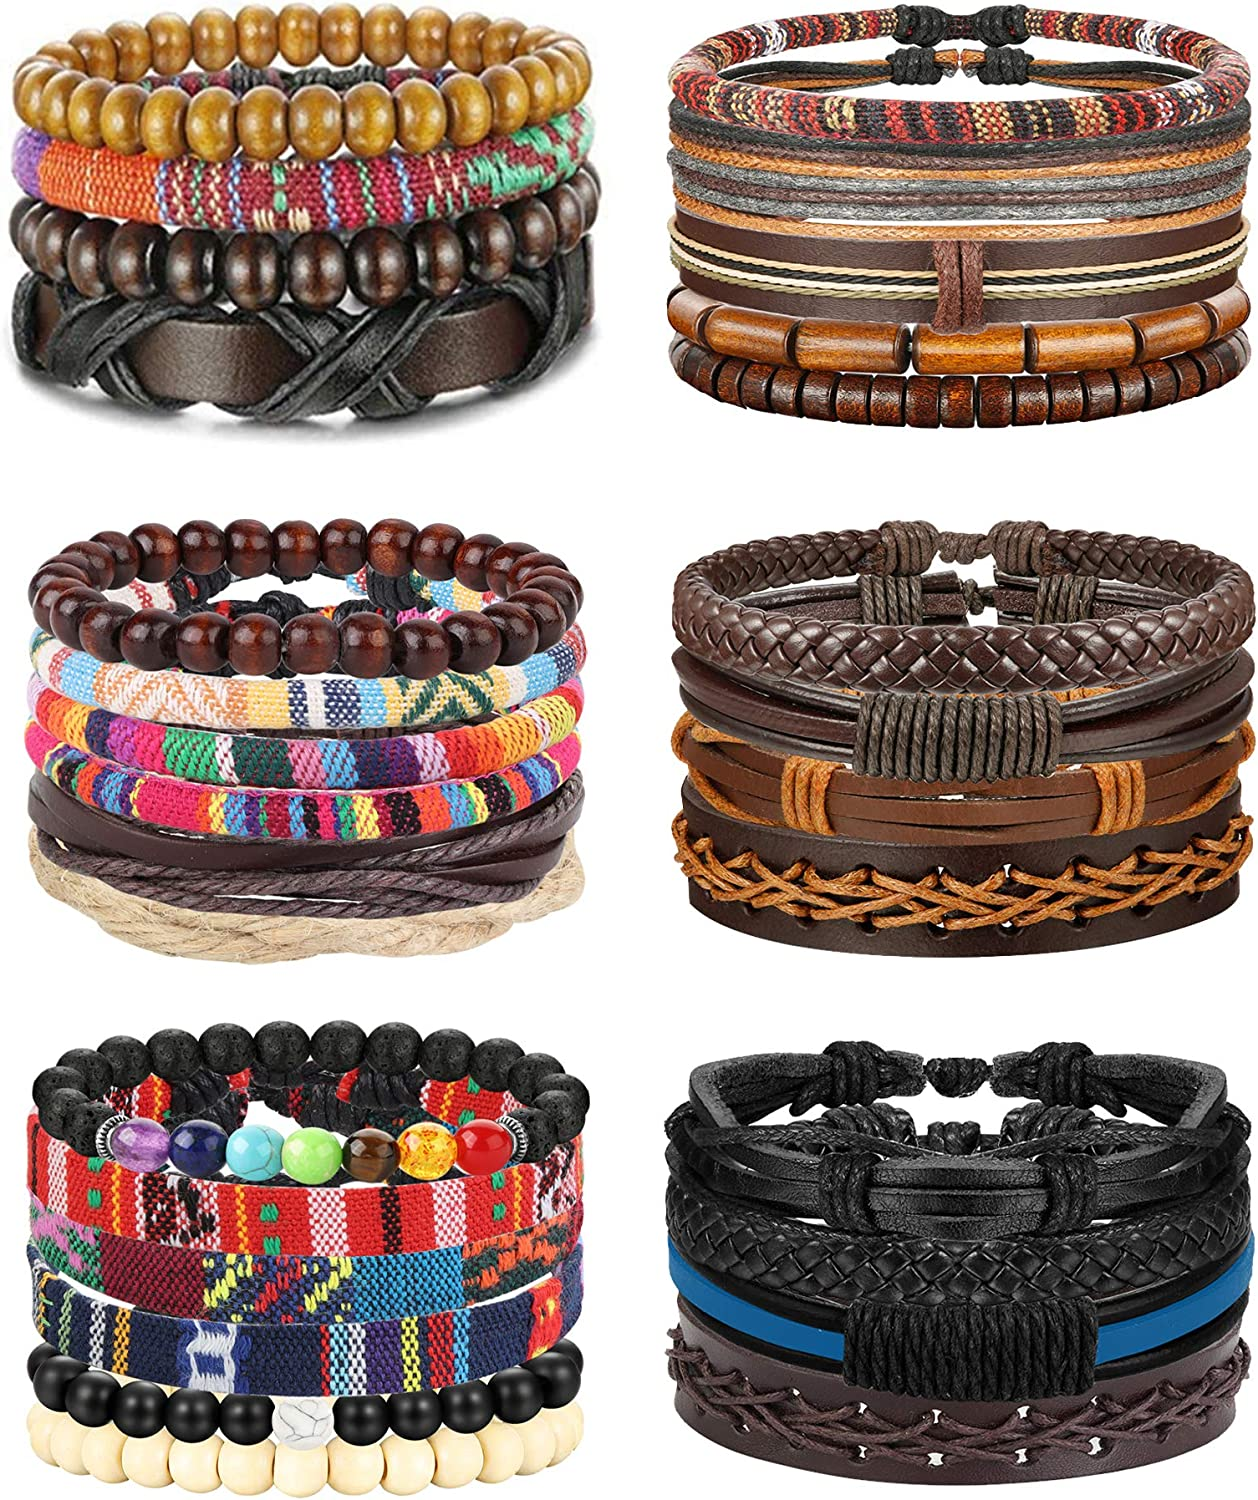 FIBO STEEL 29Pcs Braided Leather Women Easy-to-use Ranking TOP17 Men Wooden Bracelets for